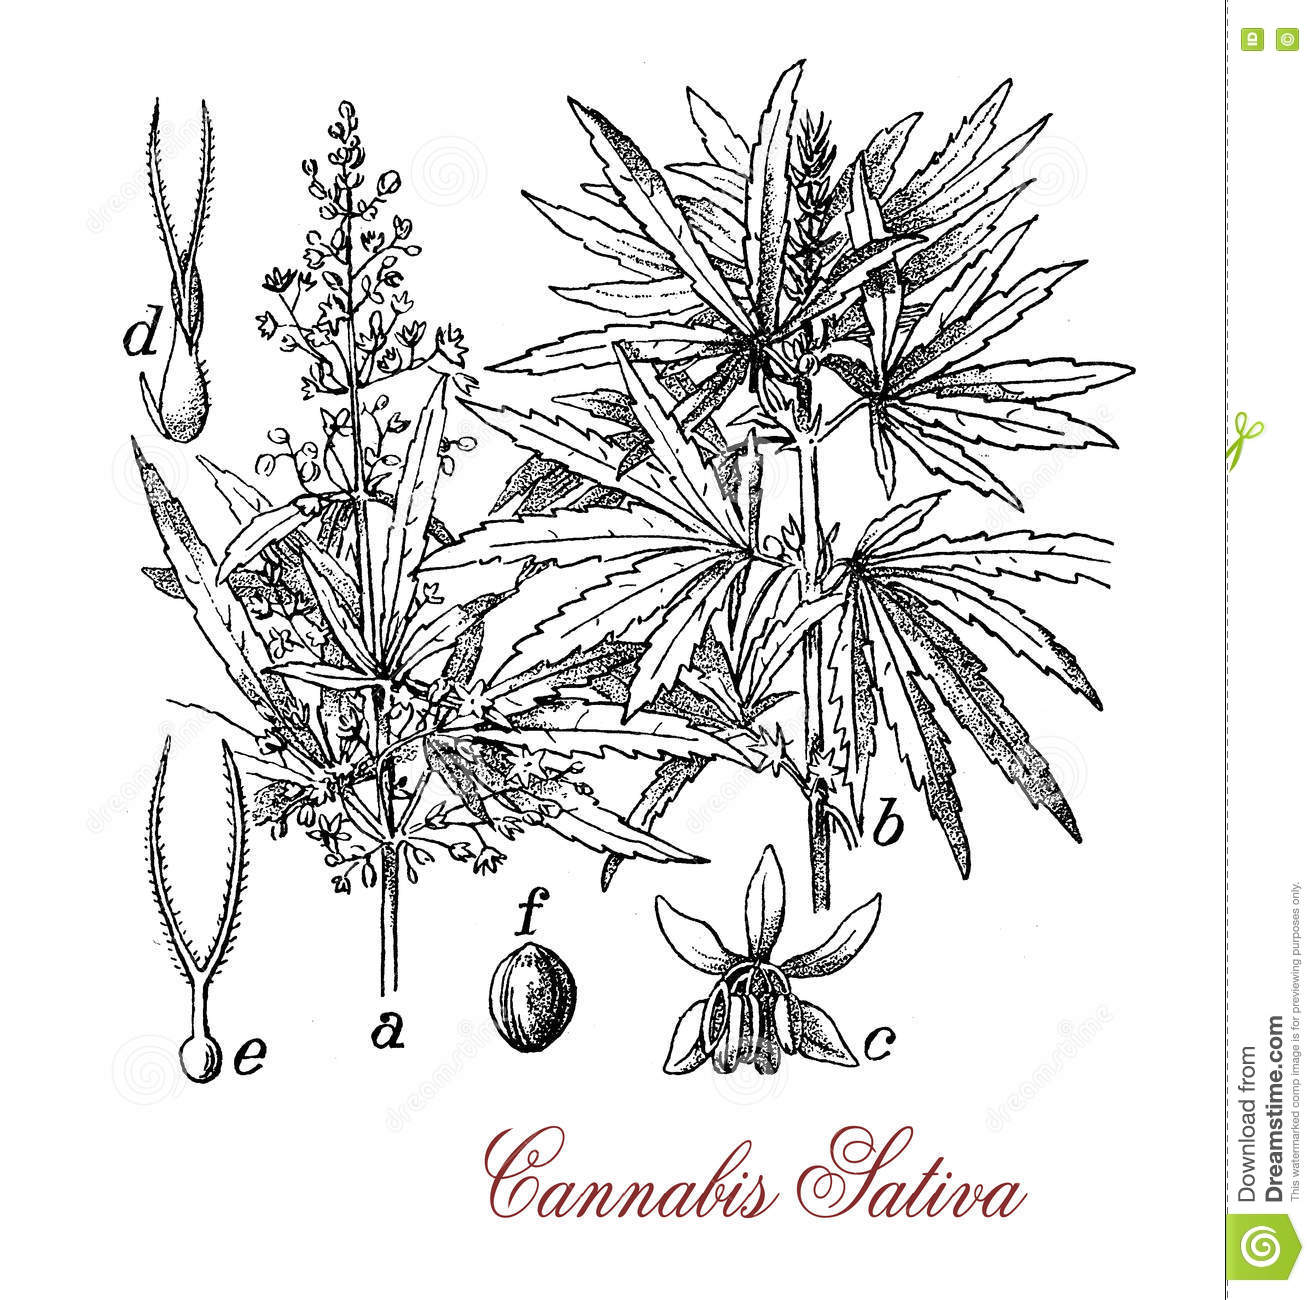 Cannabis Sativa, Botanical Vintage Engraving Stock